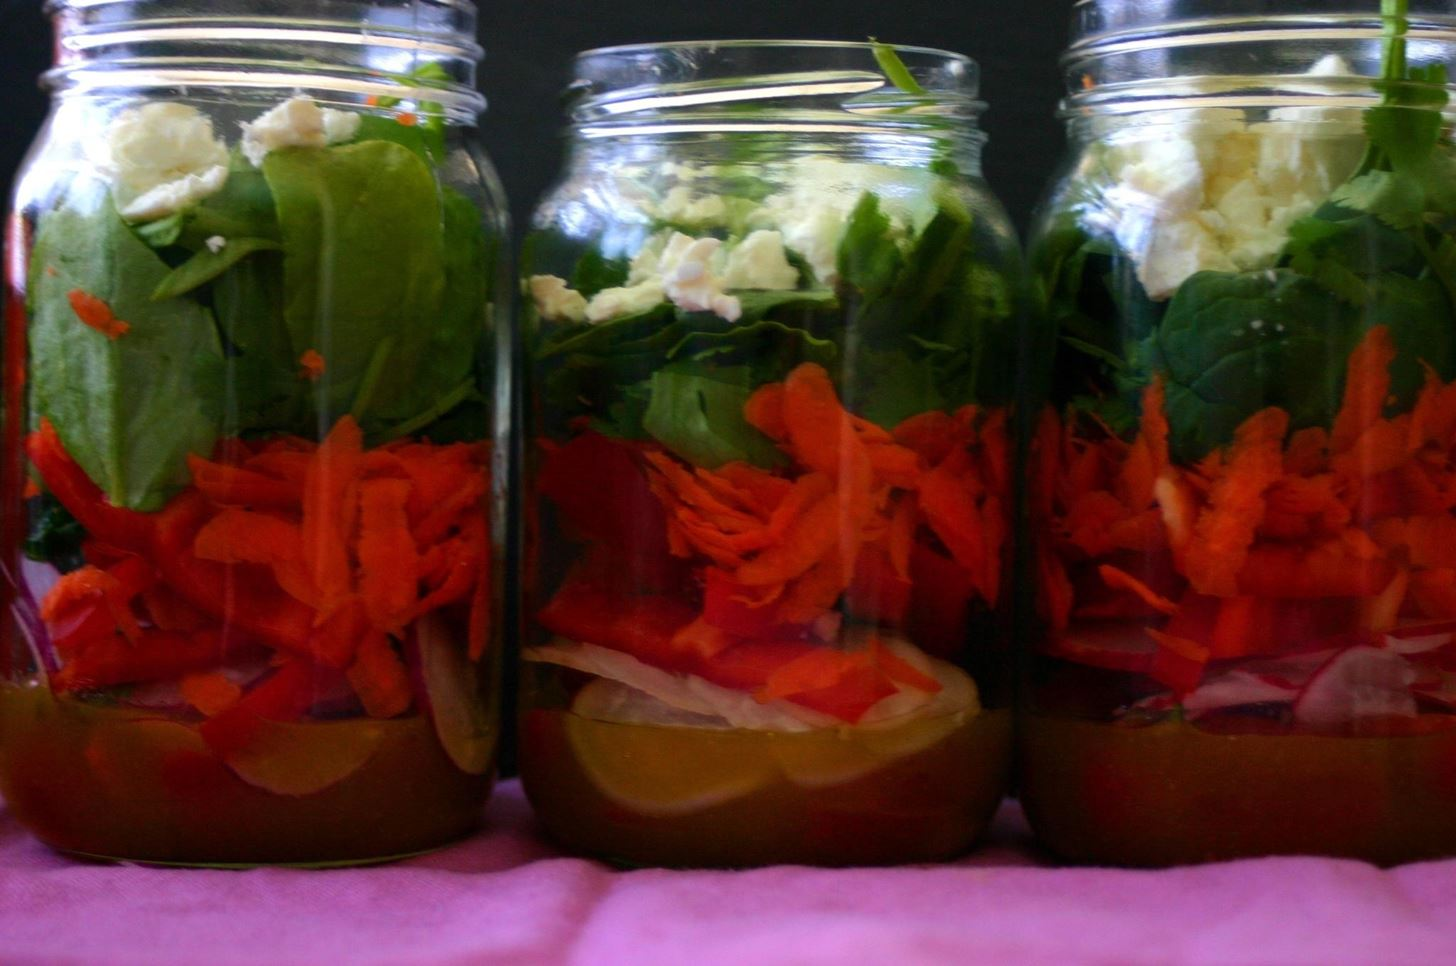 5 Awesome Culinary Uses for Mason Jars